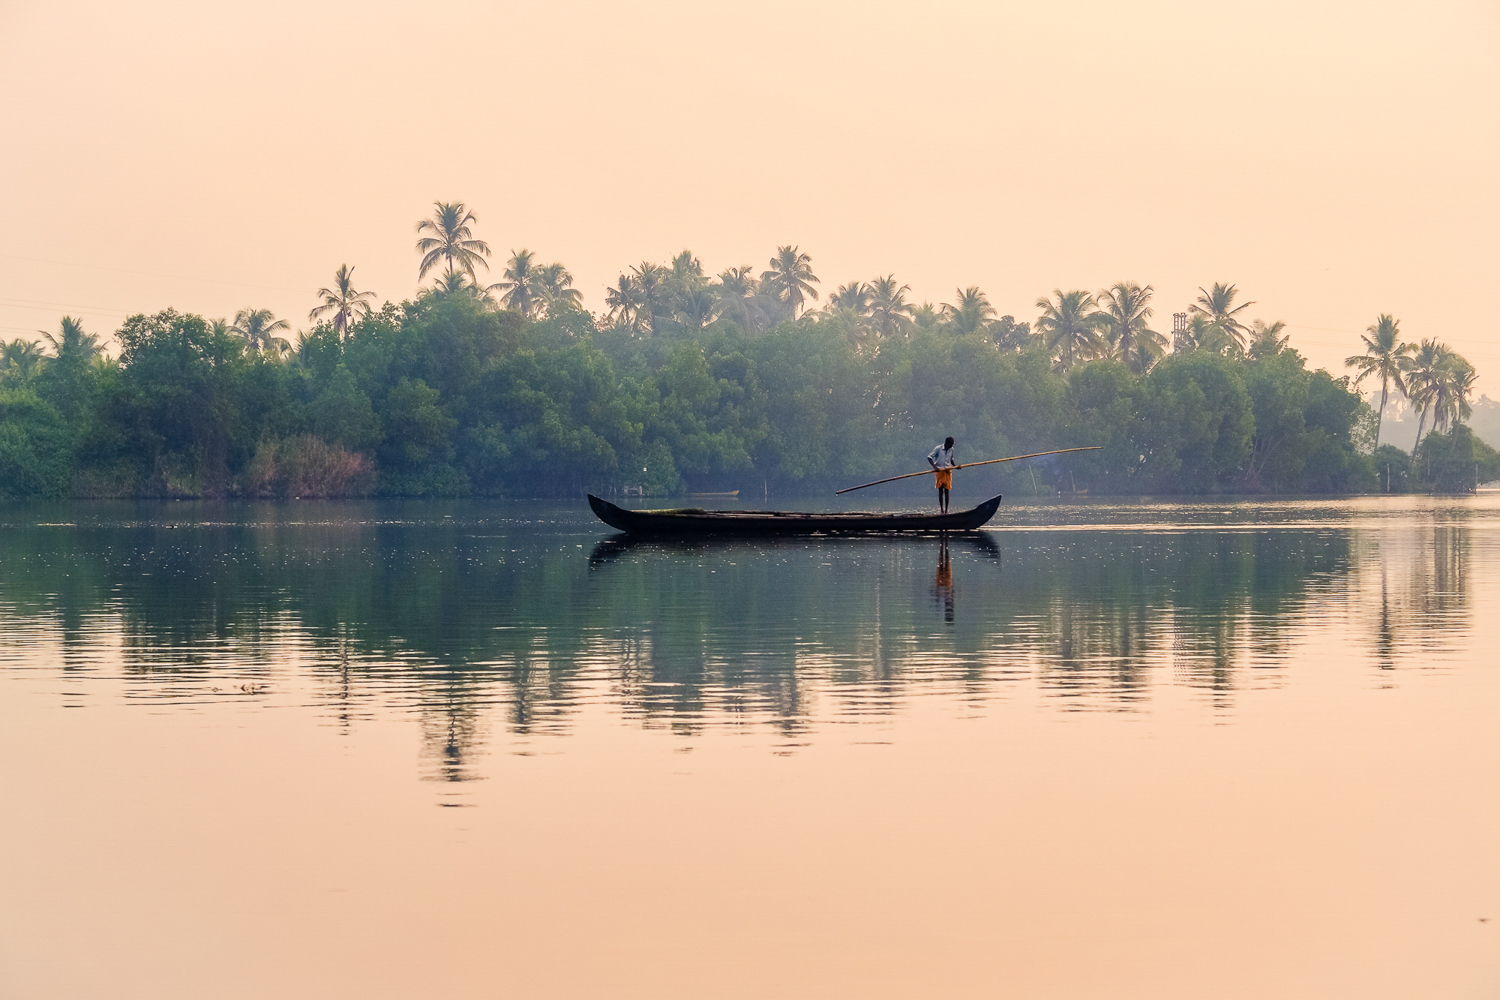 Sunrise in Kerala's backwaters. India. Fisherman on a traditional rowboat in front of the secluded shores of Kakkathuruthu (the Island of Crows), a small island on India's largest lagoon: Lake Vembanad.